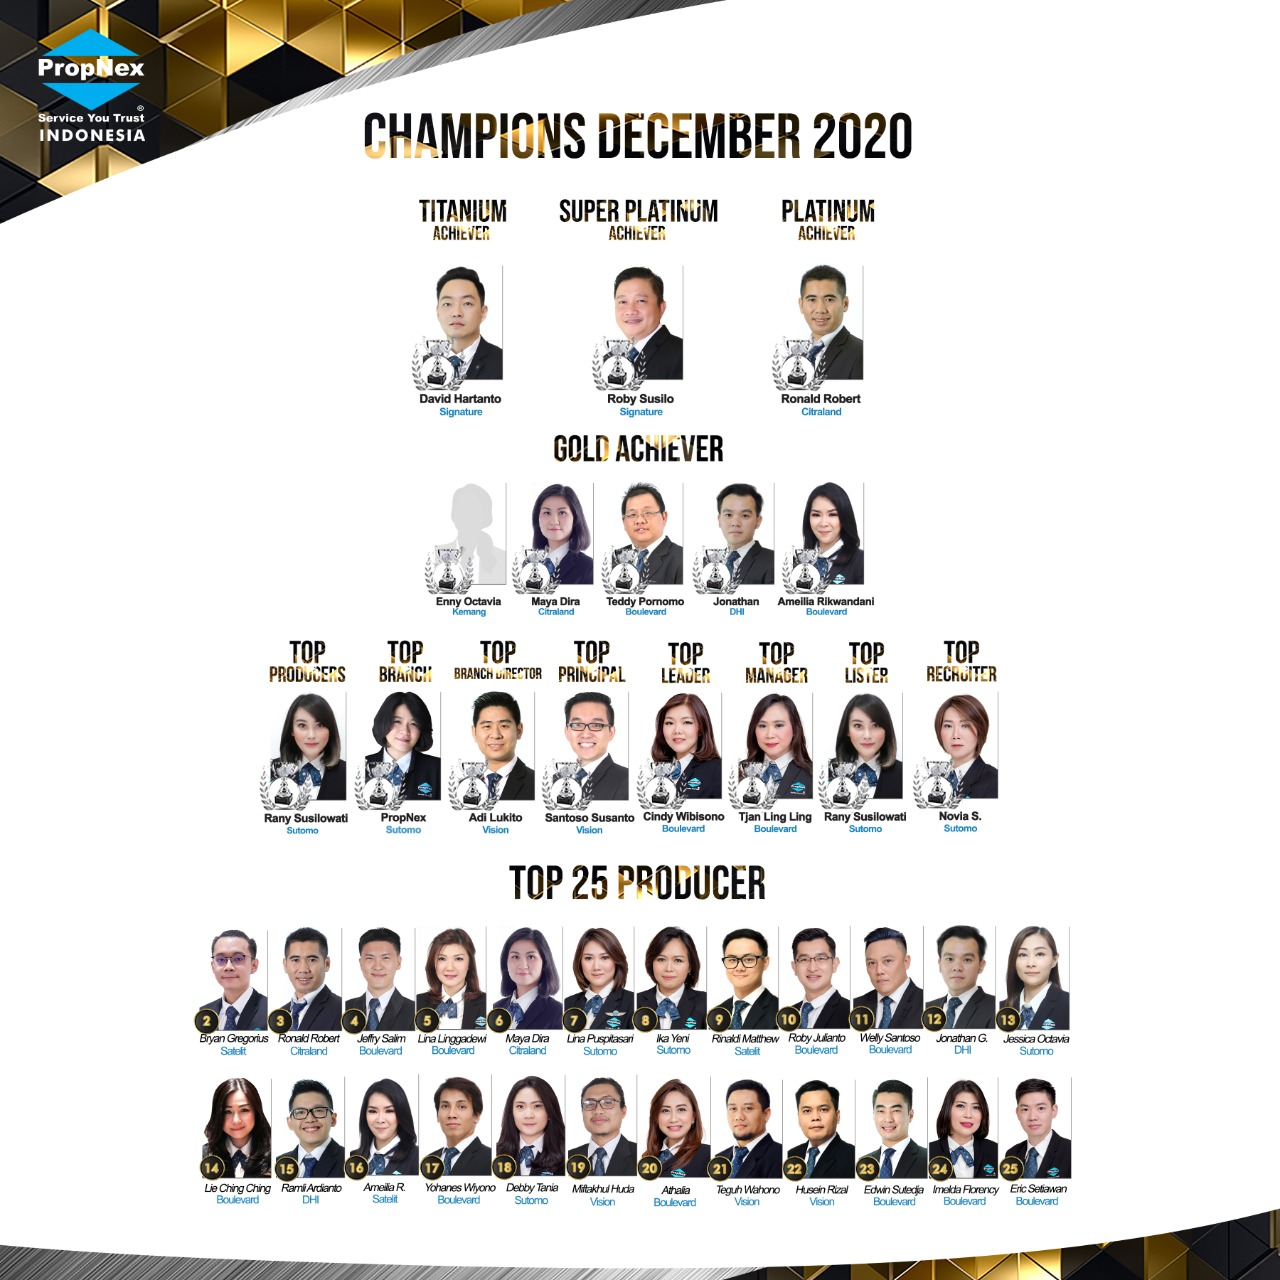 PropNex Indonesia Star Performers Property Consultants in December 2020